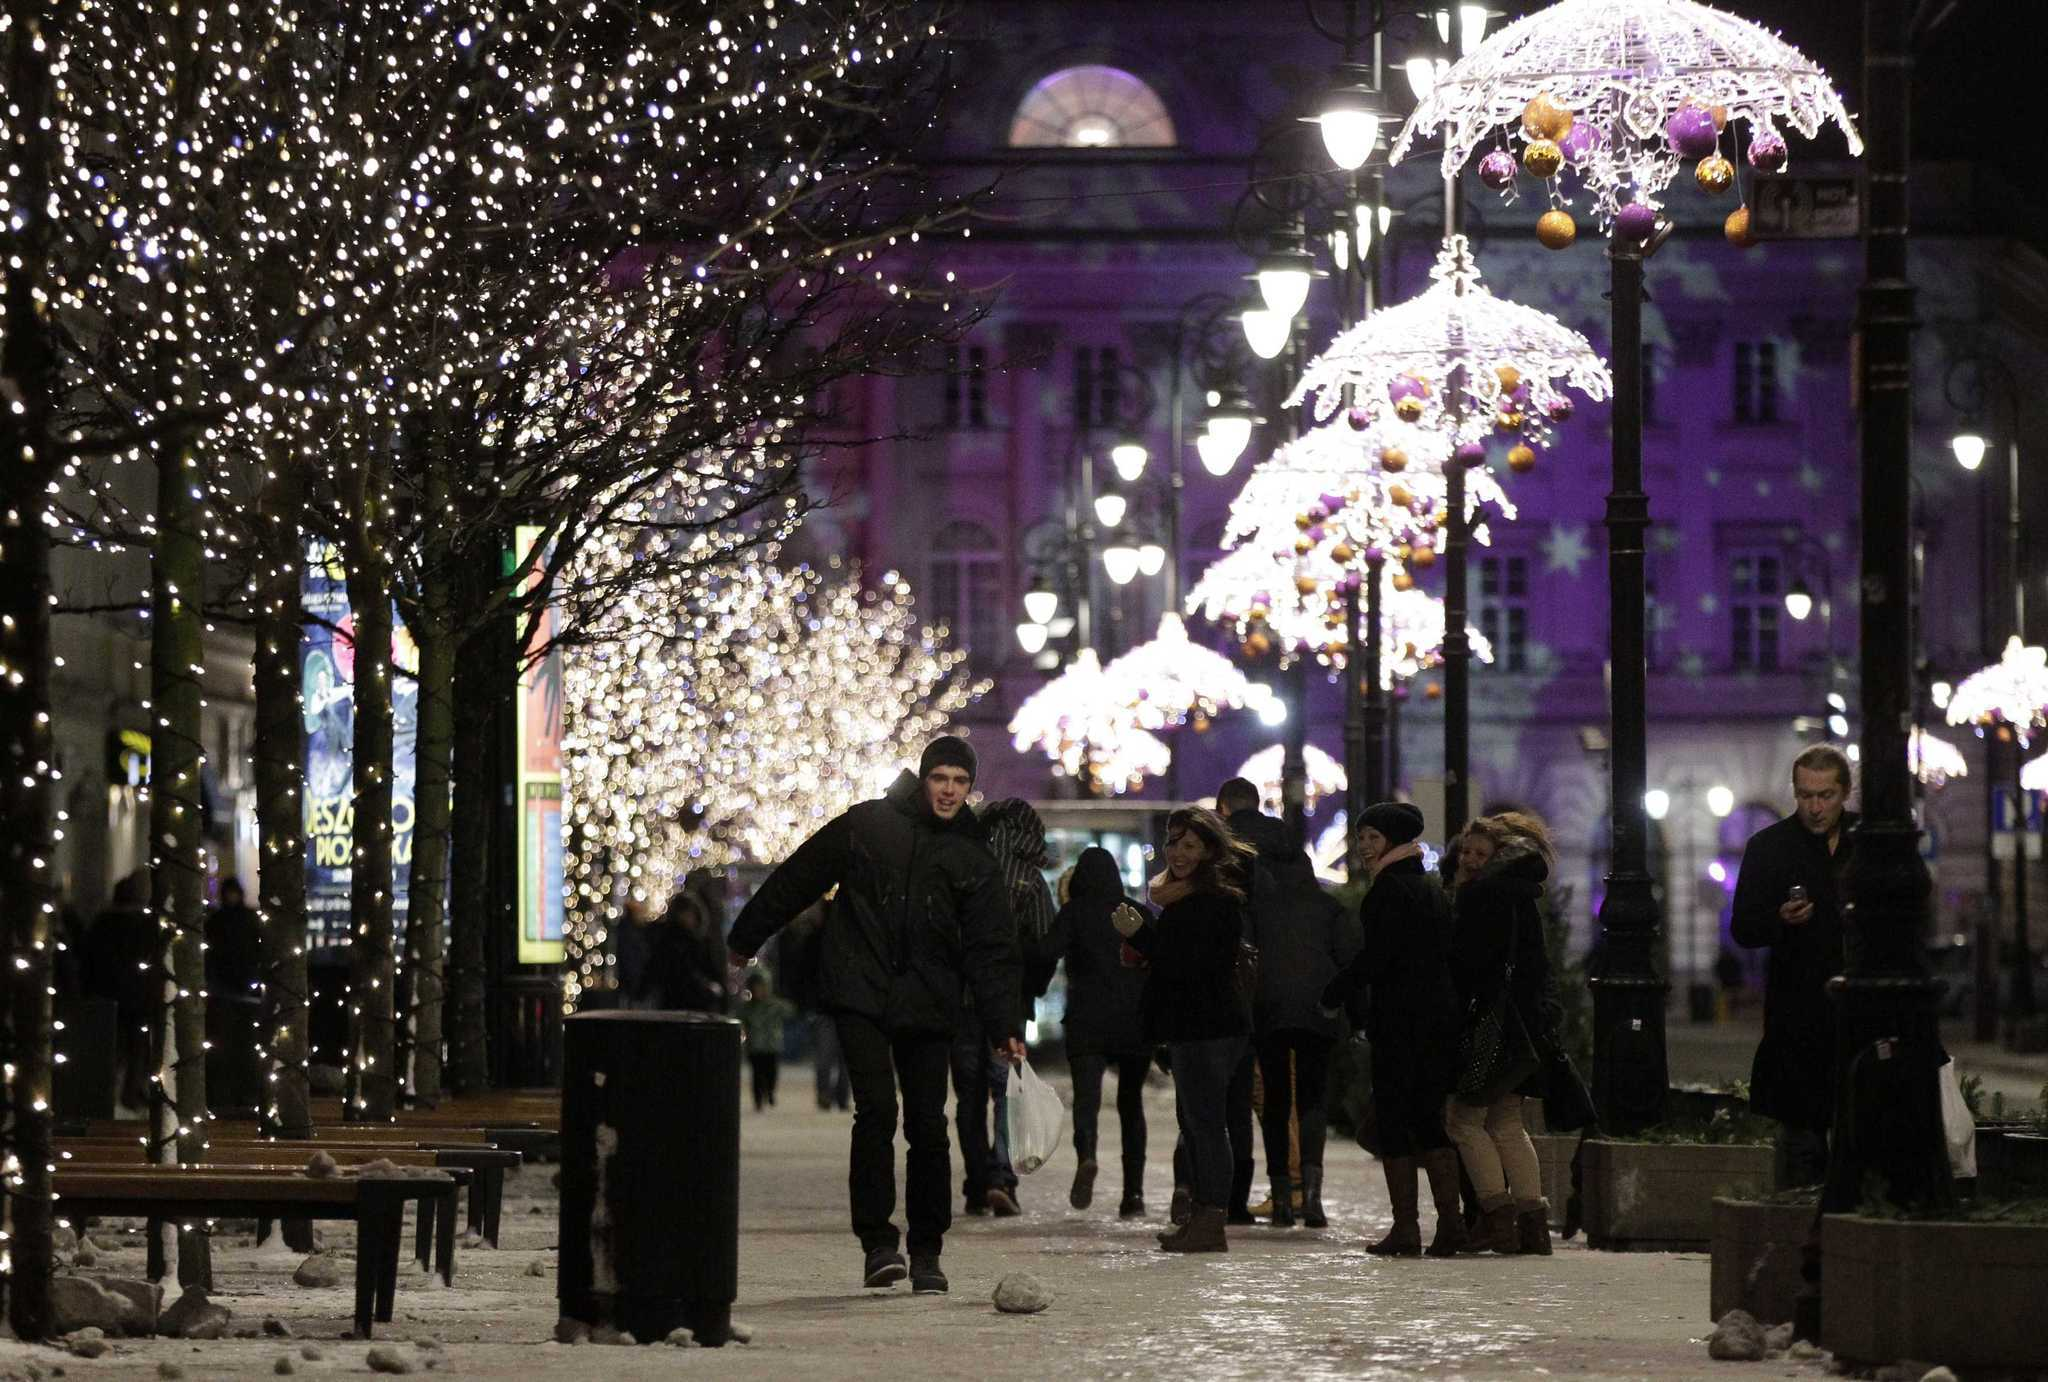 Pictures: Holiday lights from around the globe - Christmas in Warsaw, Poland